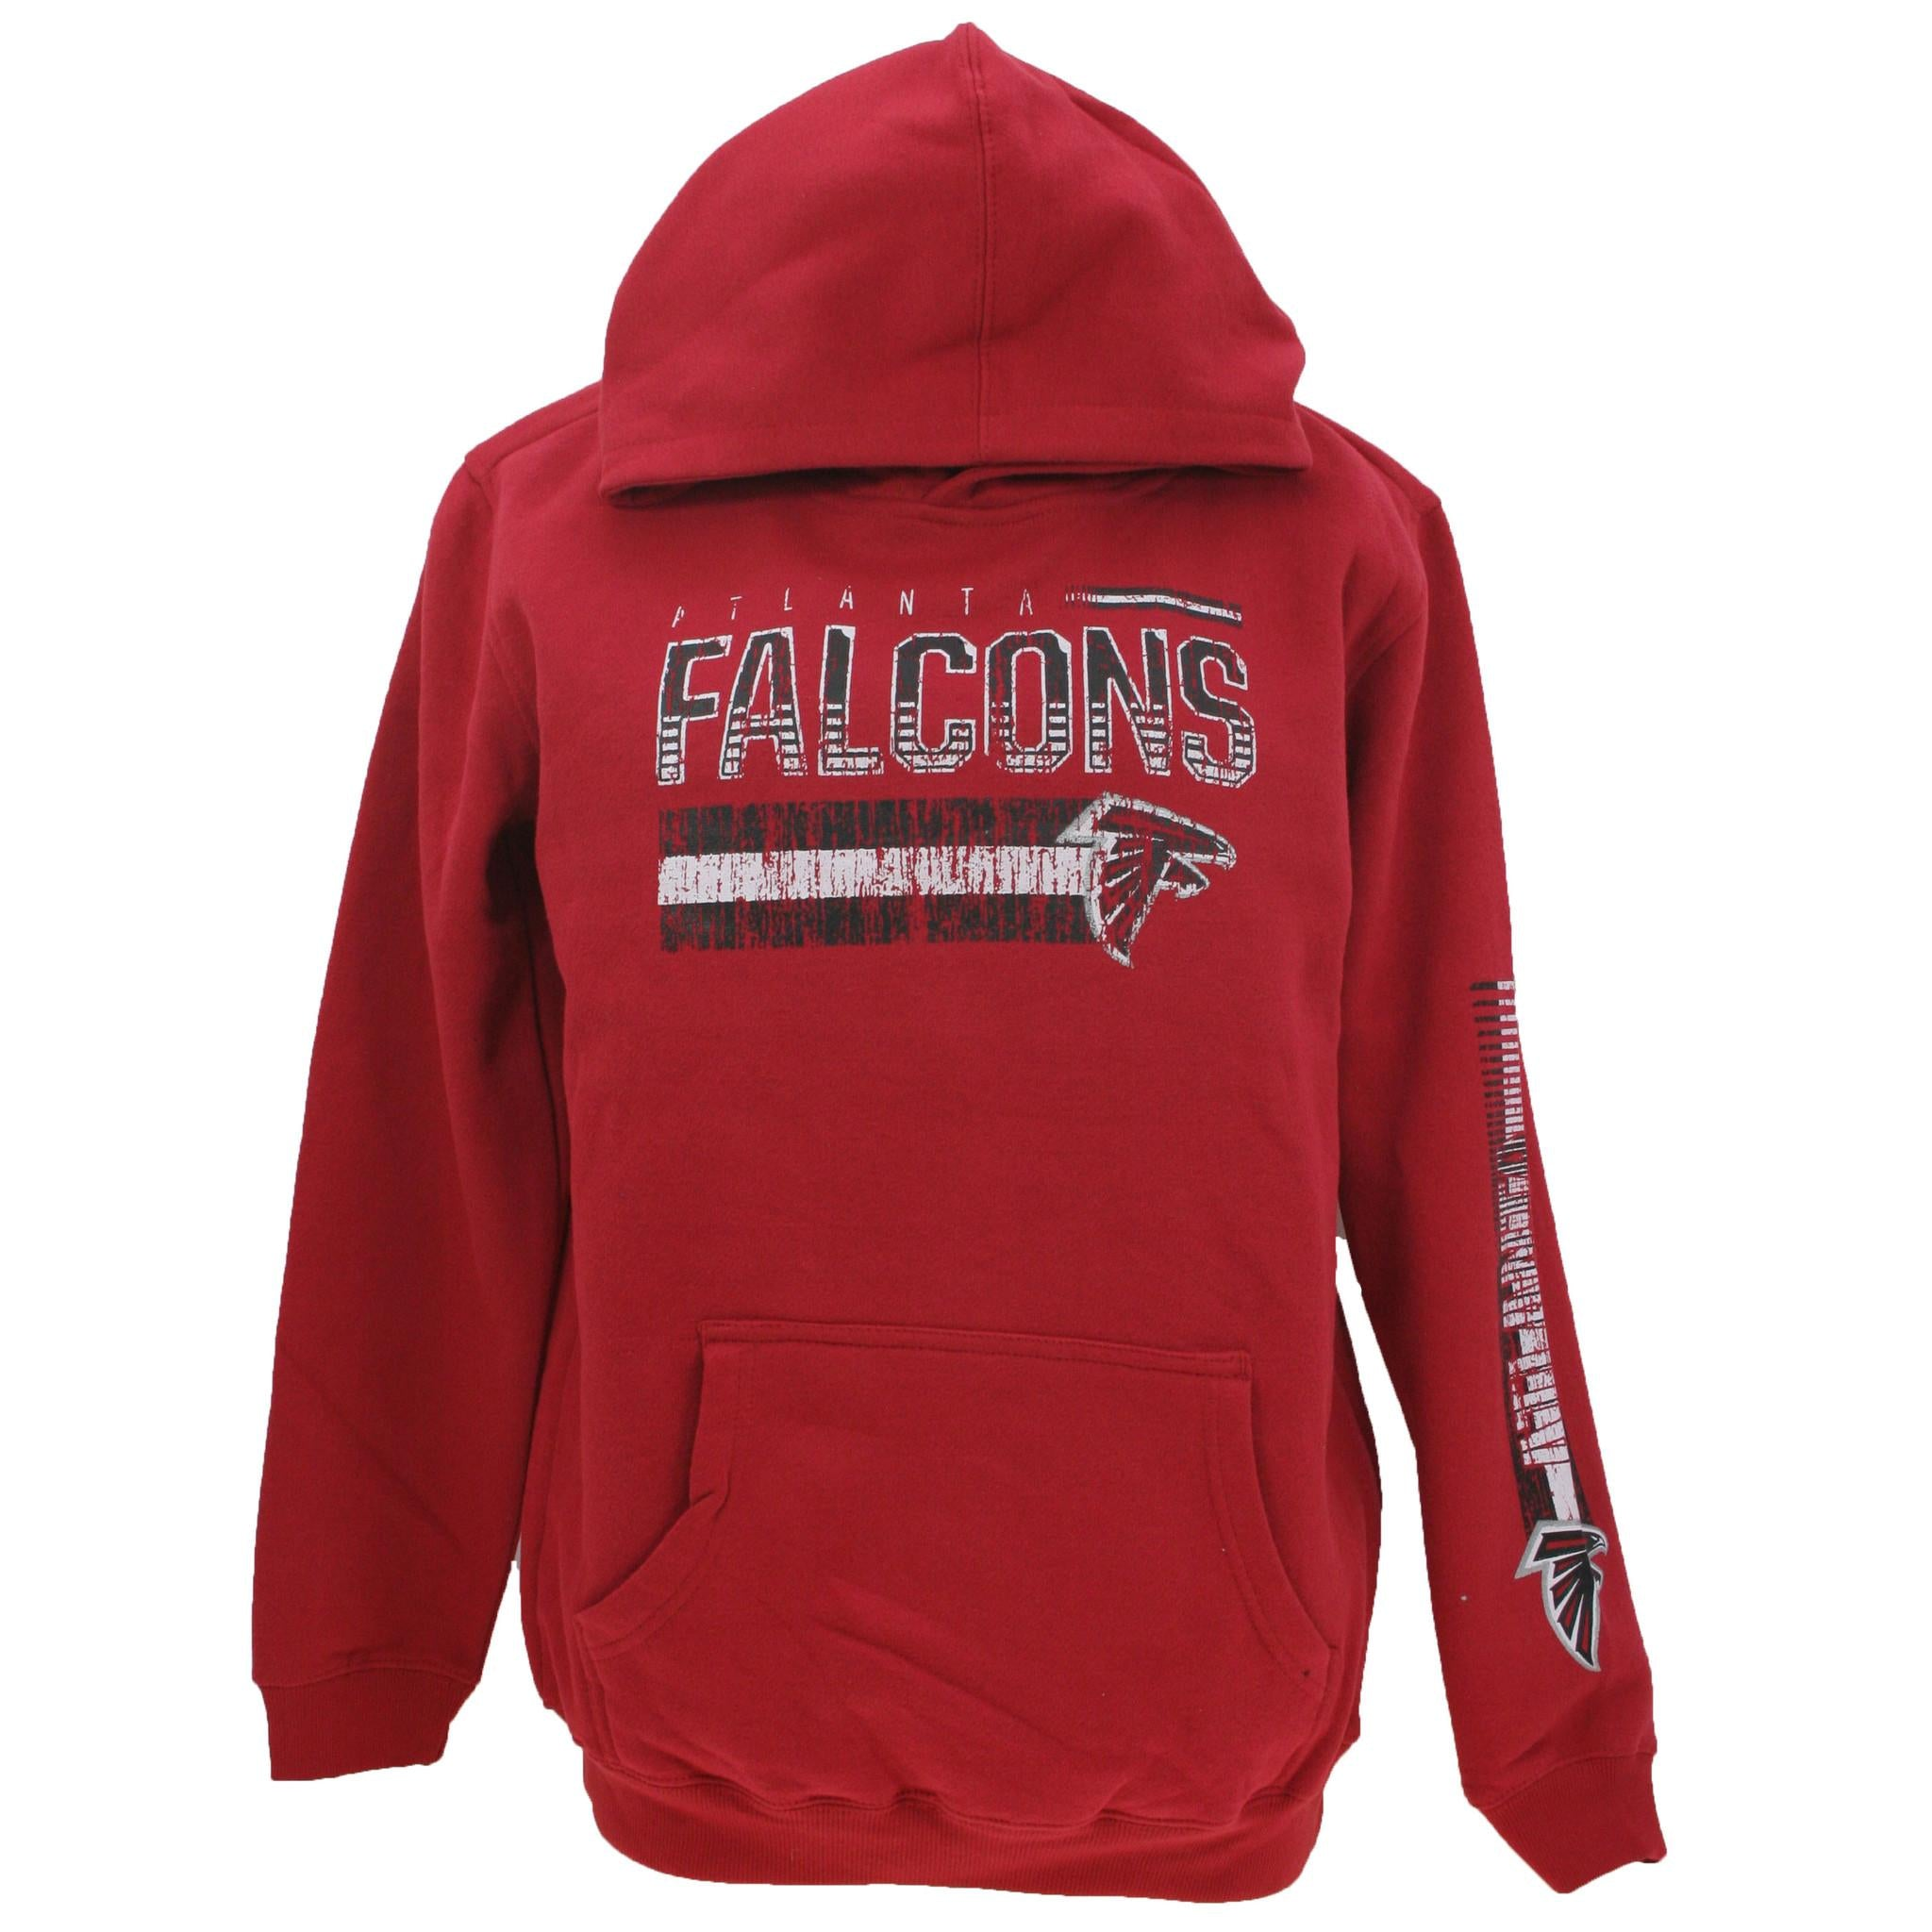 Atlanta Falcons Pullover Youth Hooded Sweatshirt- Red